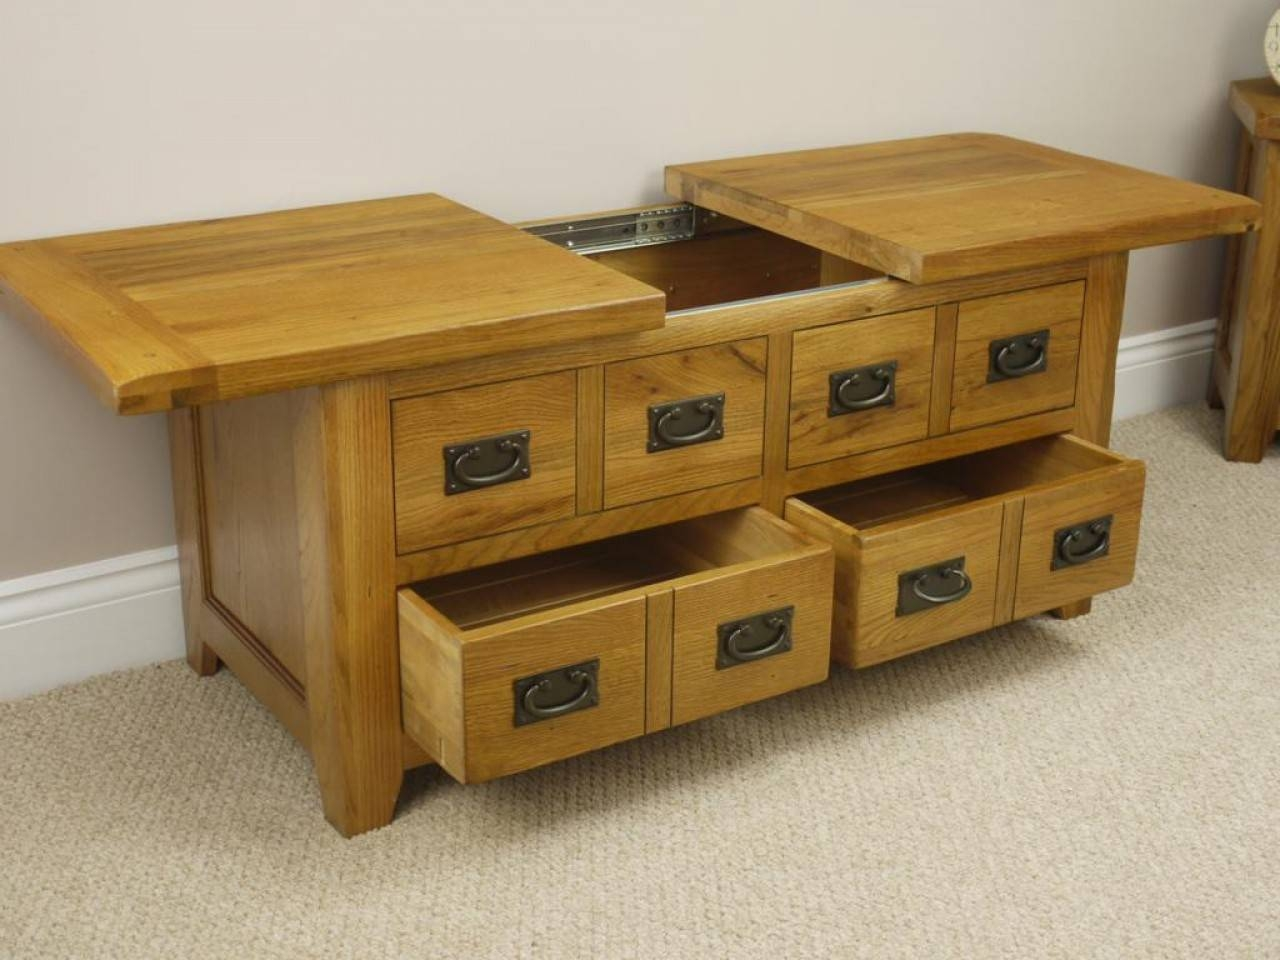 Large Square Oak Coffee Table With Storage | Coffee Tables Decoration throughout Coffee Tables With Storage (Image 23 of 30)